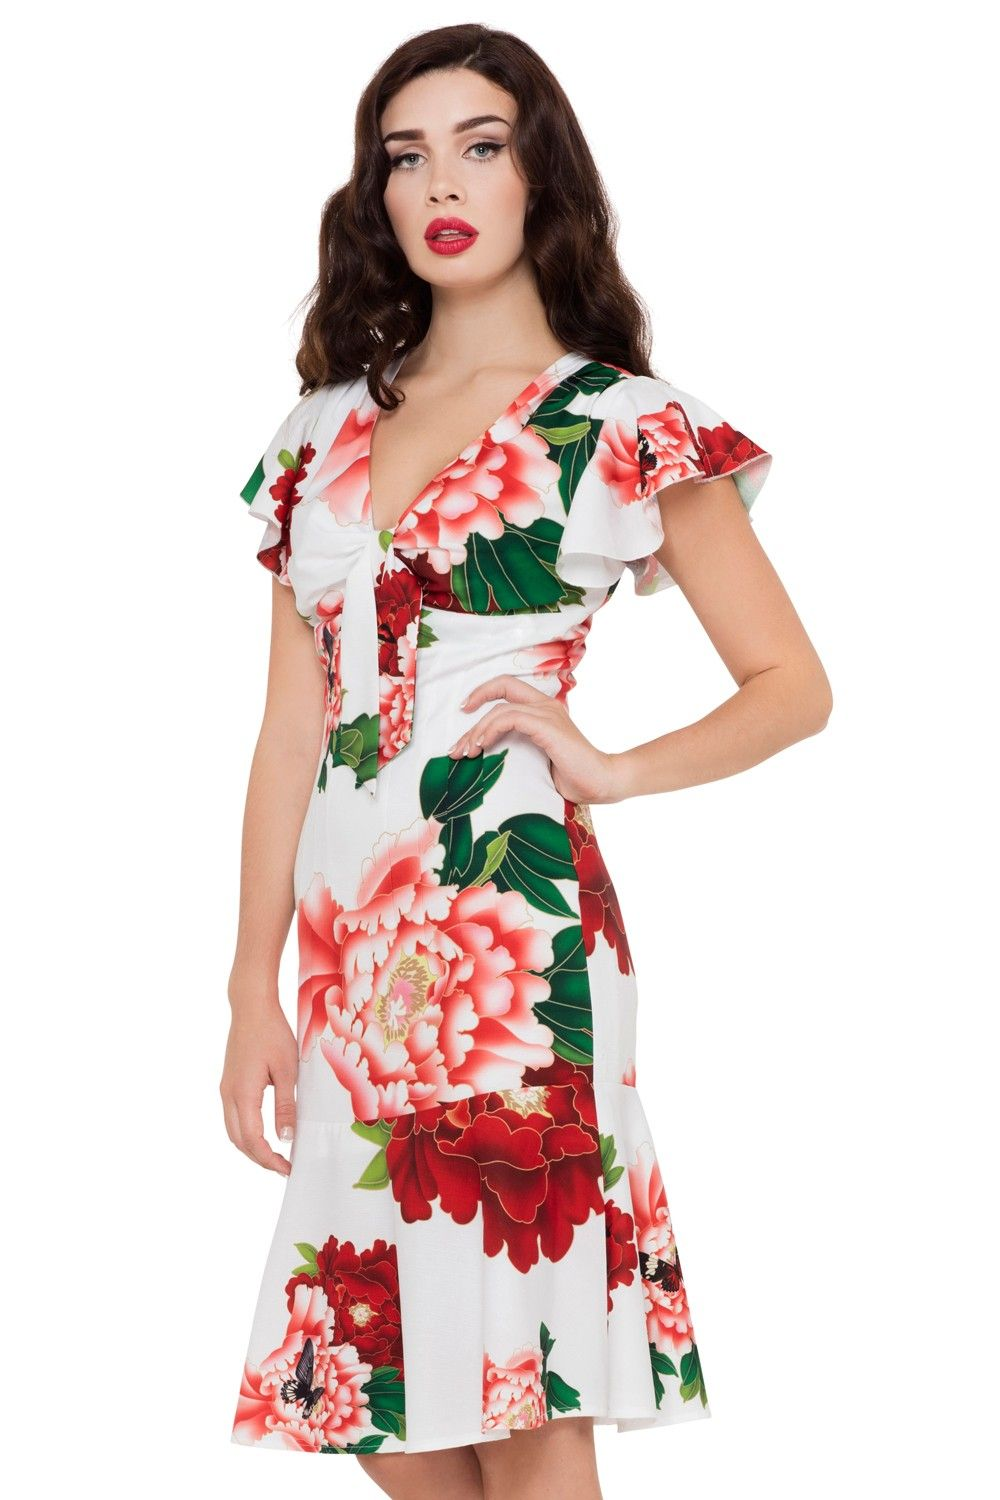 Myrna Red and White Floral Dress - Dresses - Dresses & Jumpsuits